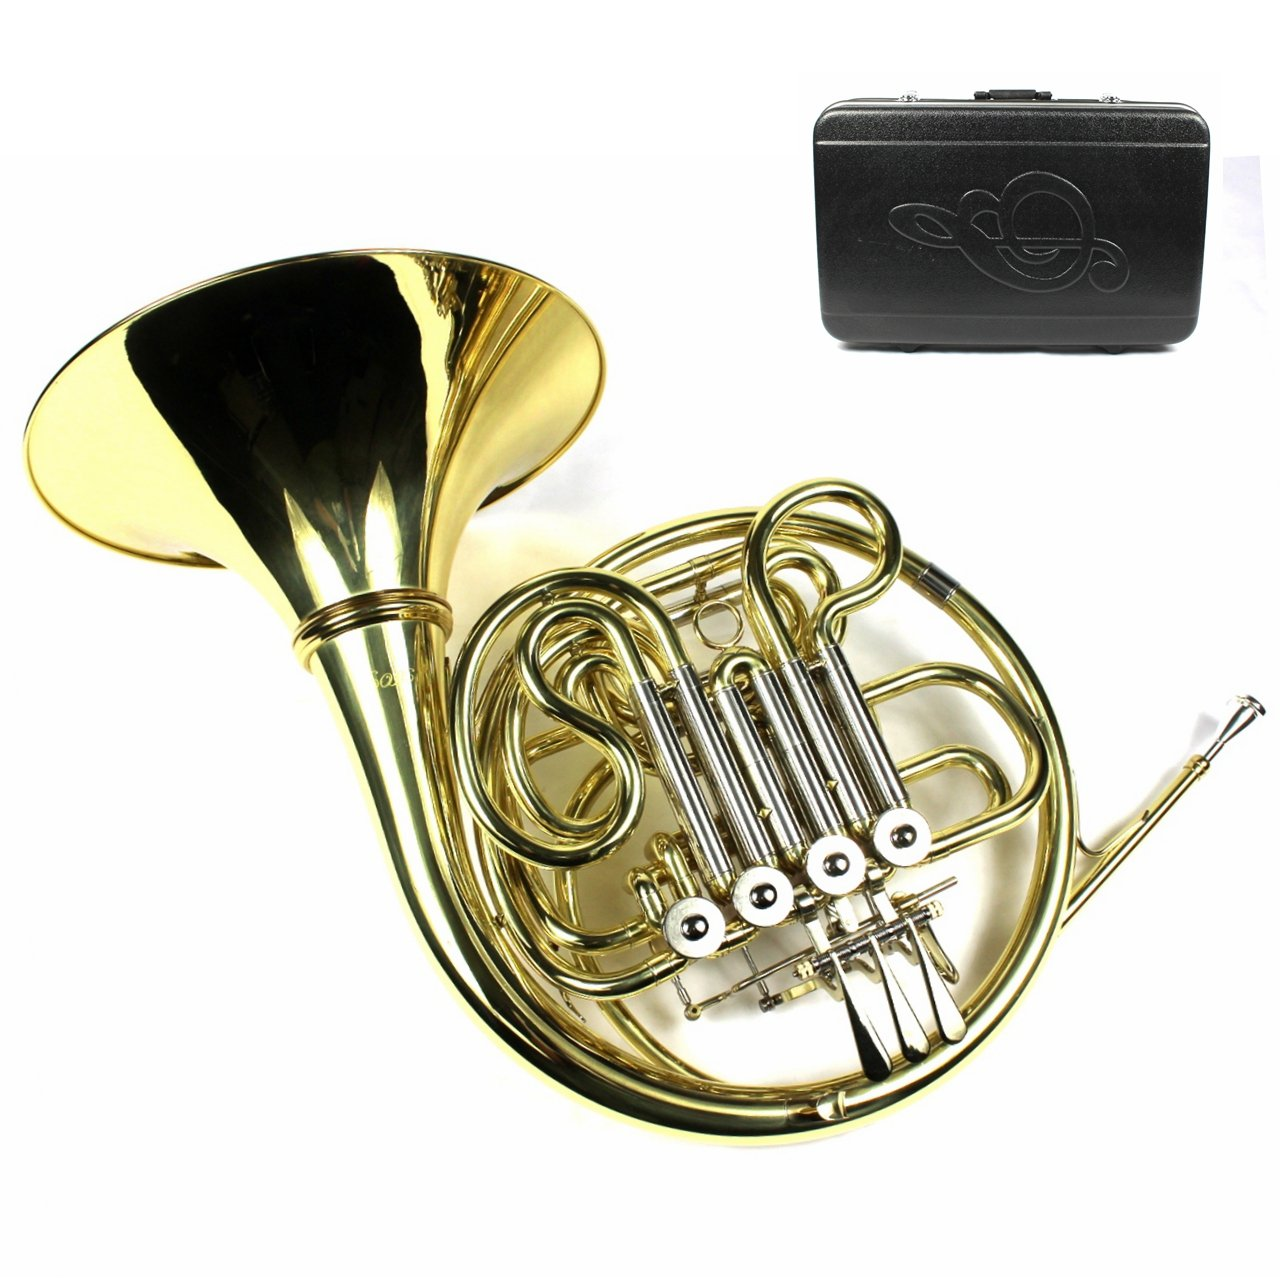 Monel Rotors Bb/F 4 Keys Double French Horn w/Case & Mouthpiece-Gold Lacquer Finish by Moz